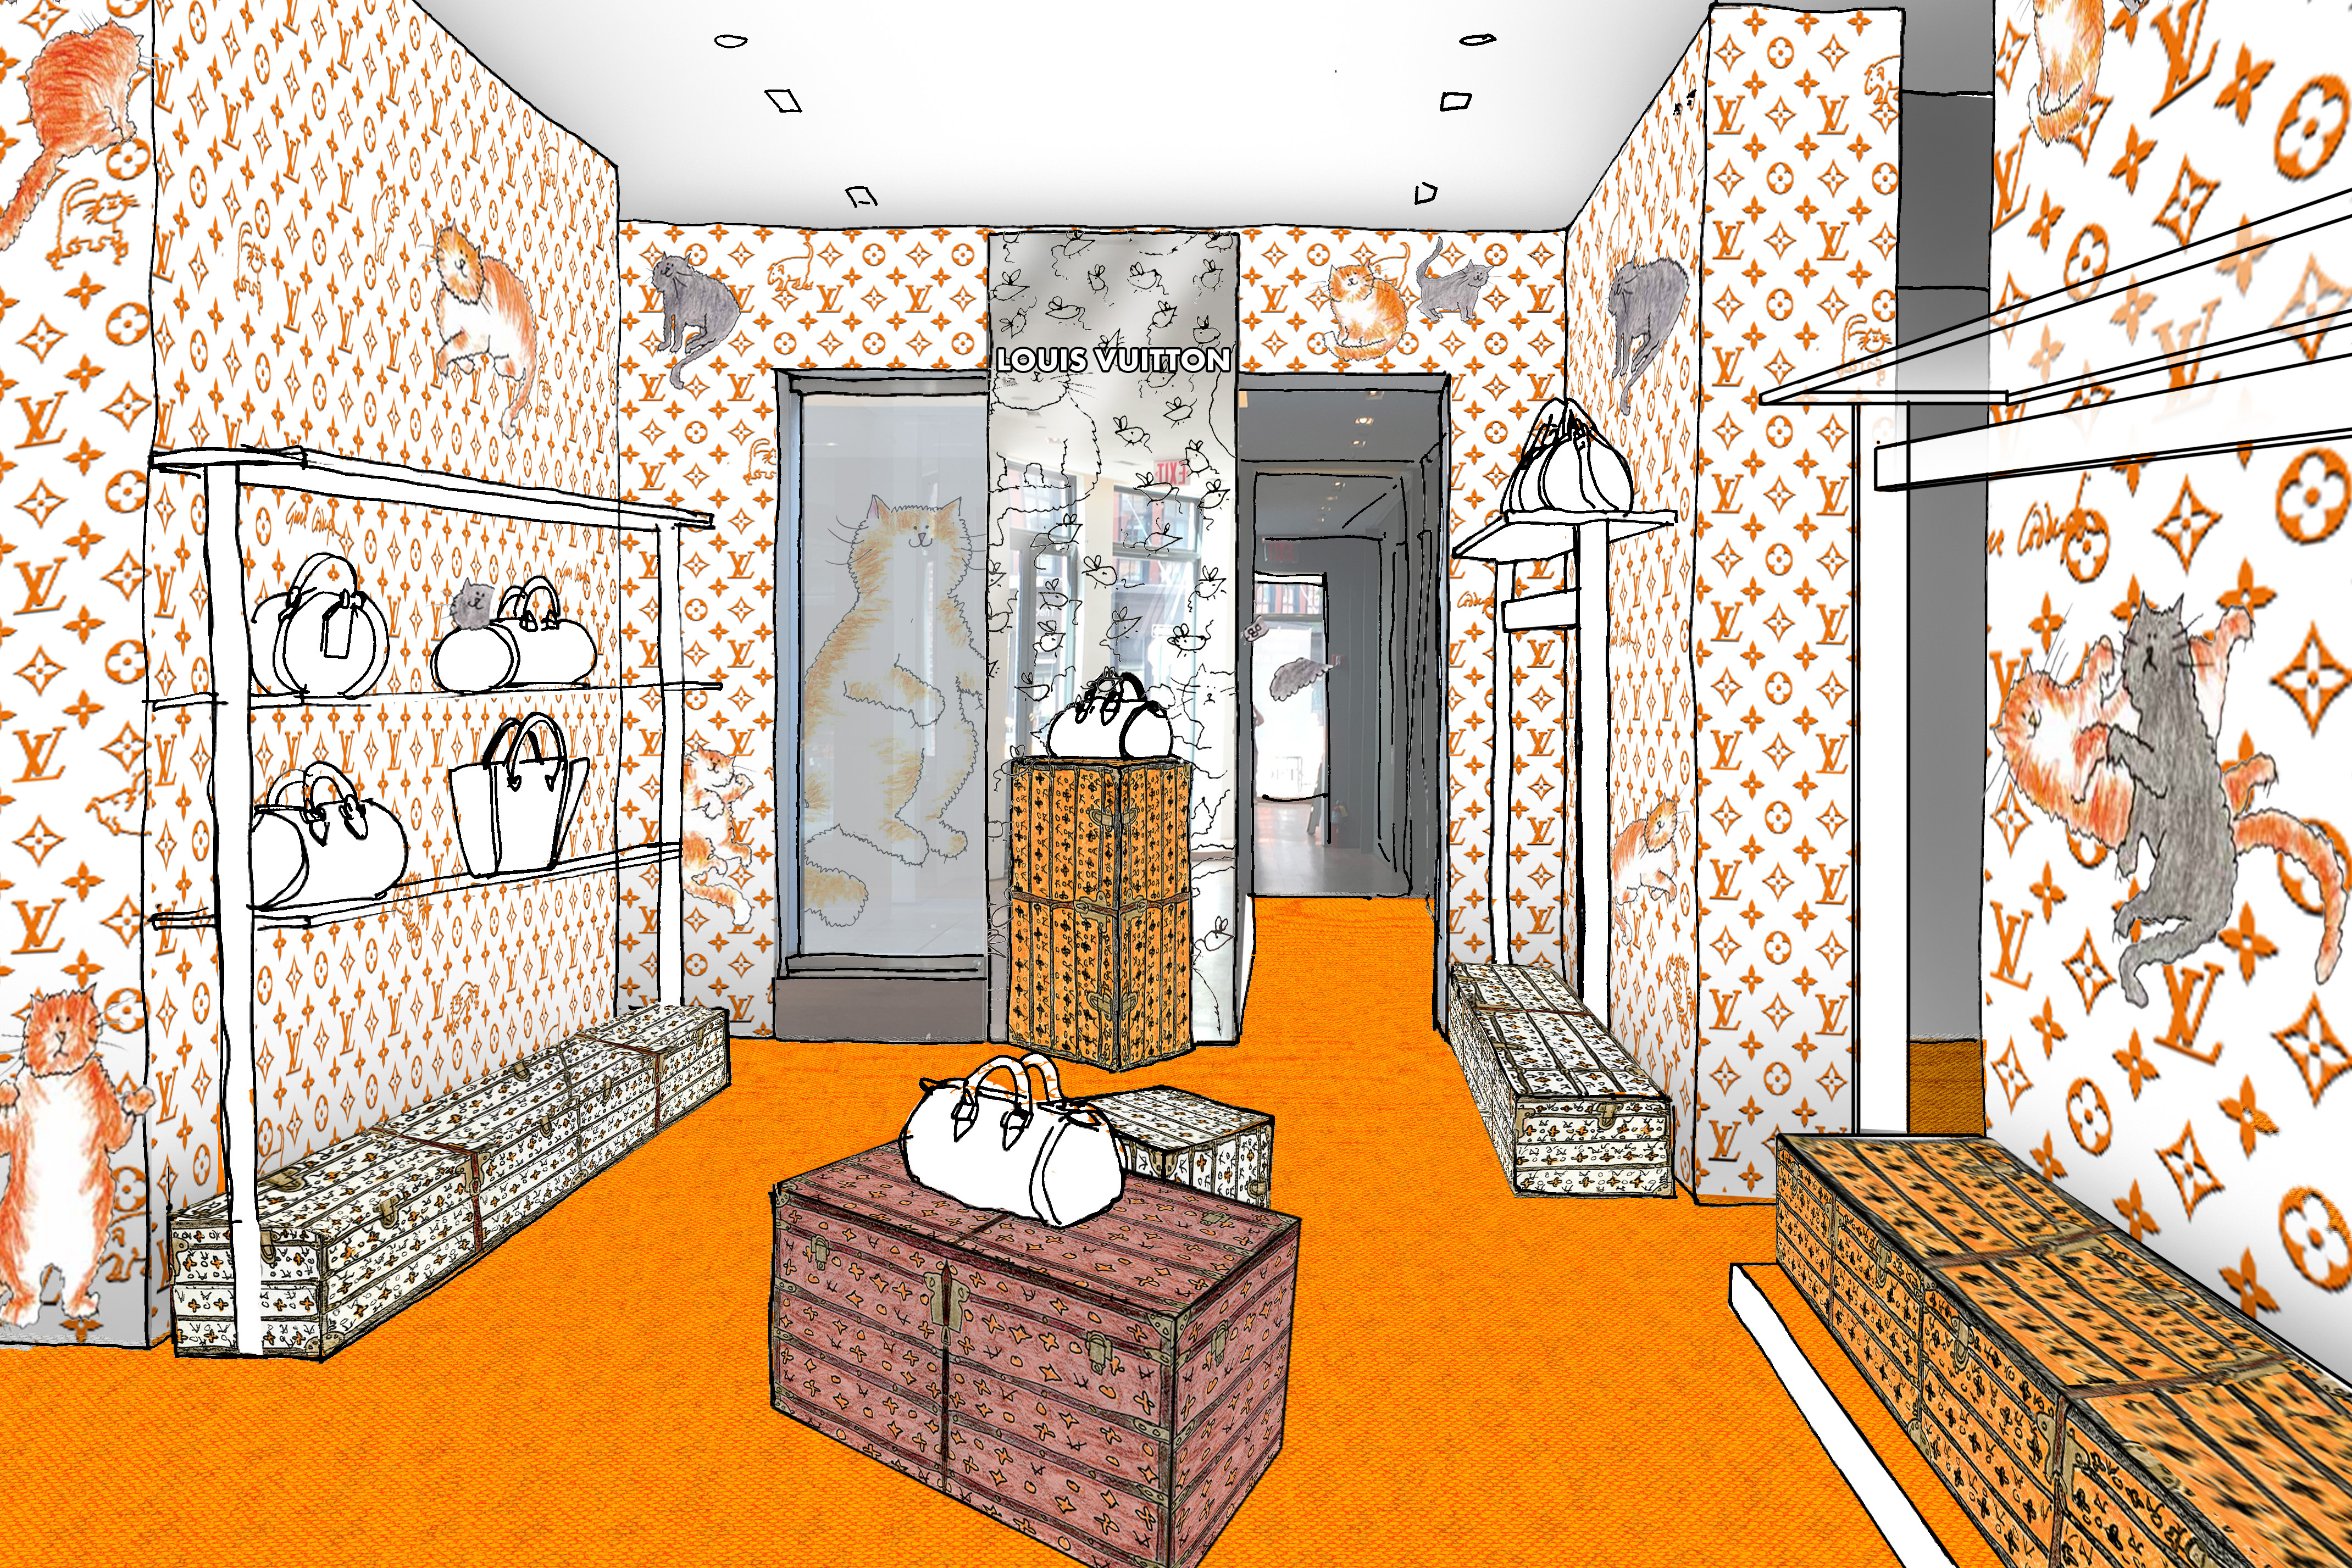 A rendering of the Louis Vuitton pop-up store in New York City's Meatpacking district.